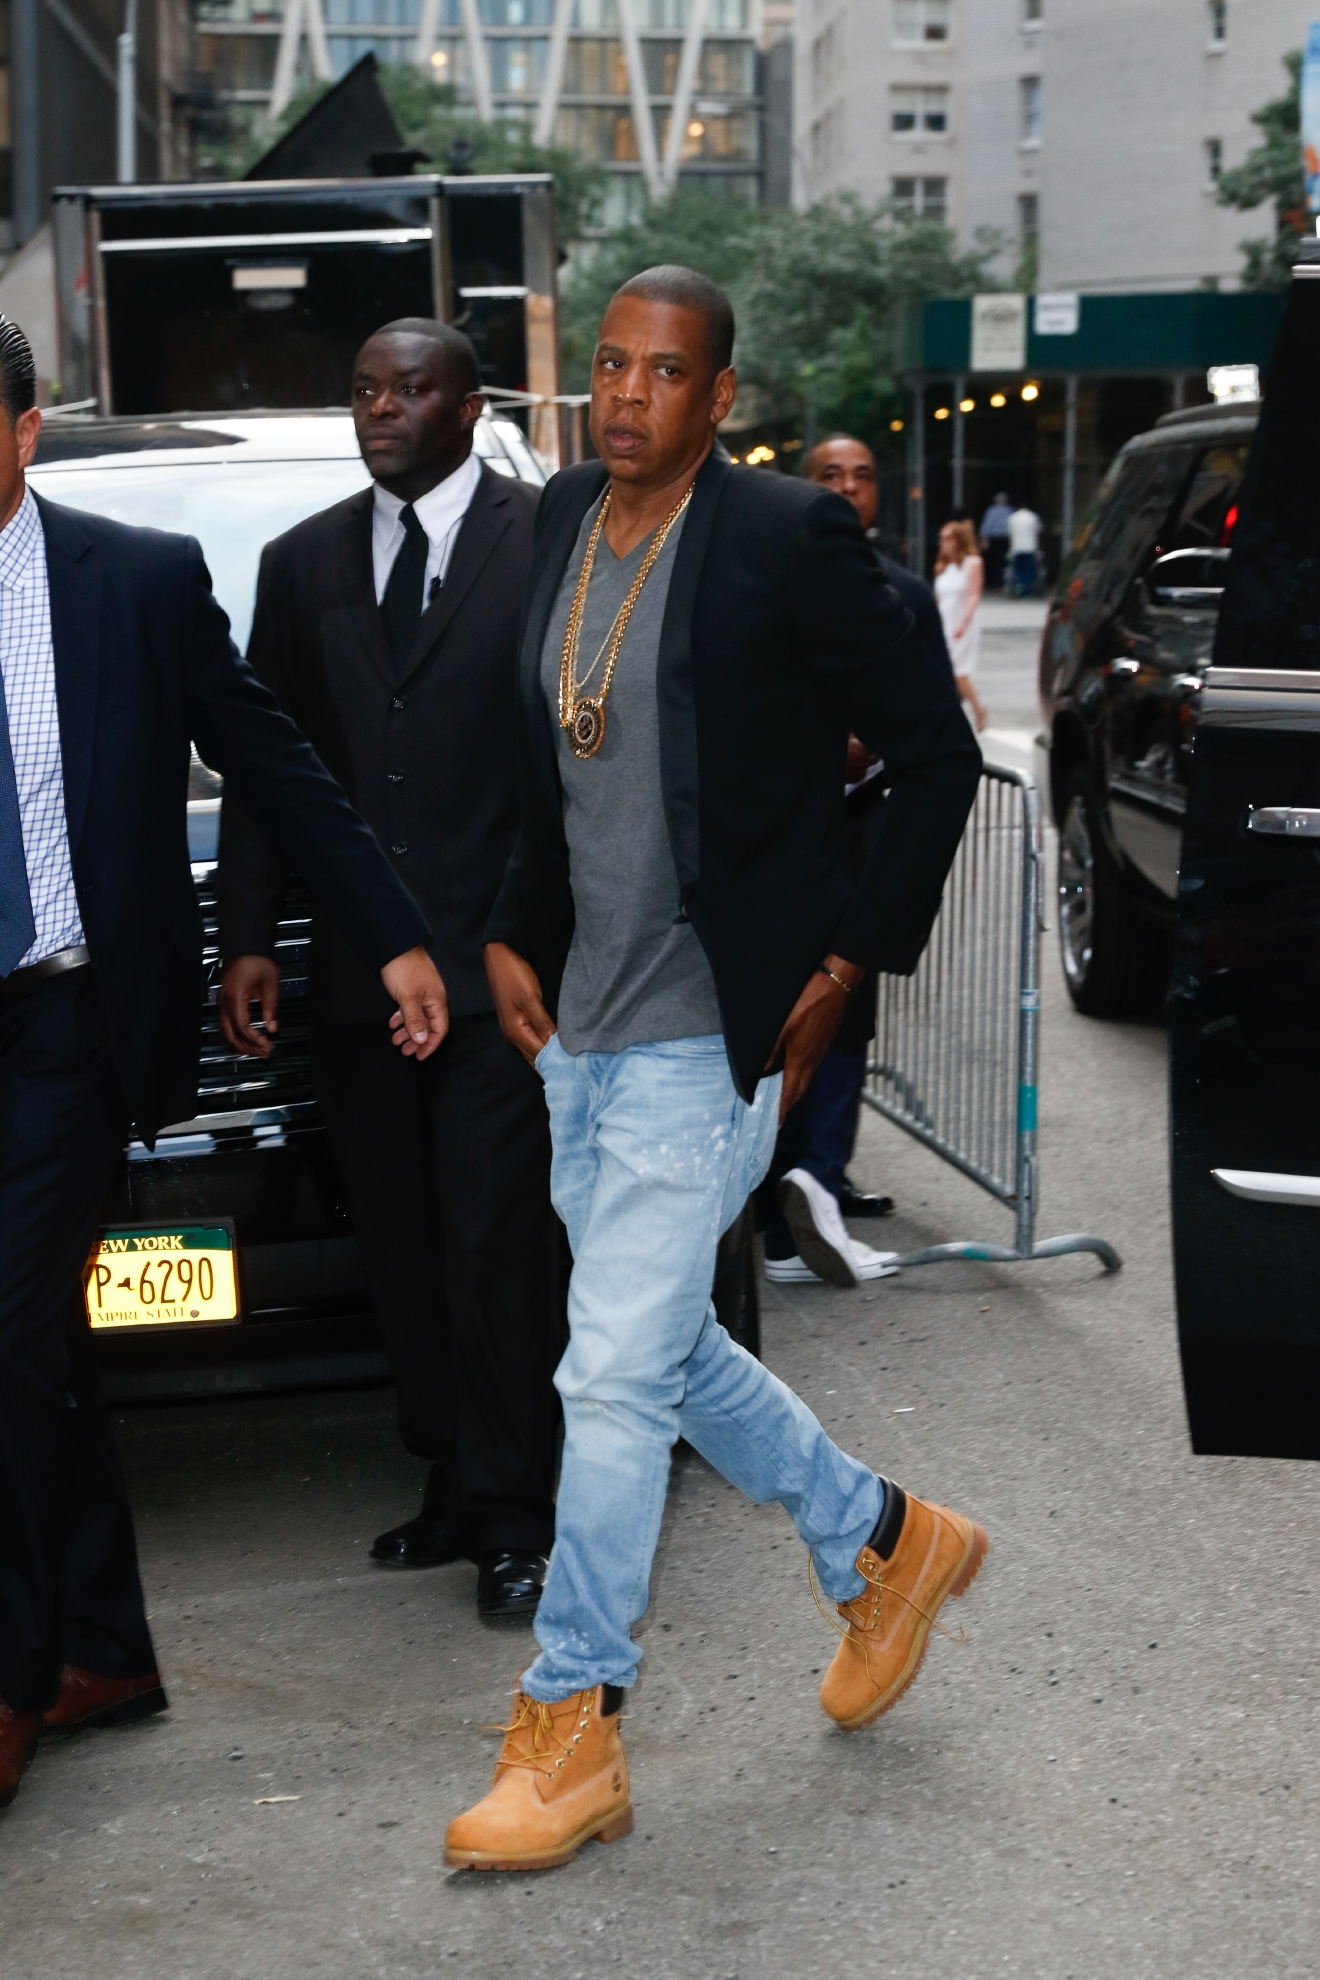 New York premiere of 'Southpaw' for THE WRAP at AMC Loews Lincoln Square  - Arrivals  Featuring: Jay-Z Where: New York, New York, United States When: 20 Jul 2015 Credit: Abel Fermin/WENN.com